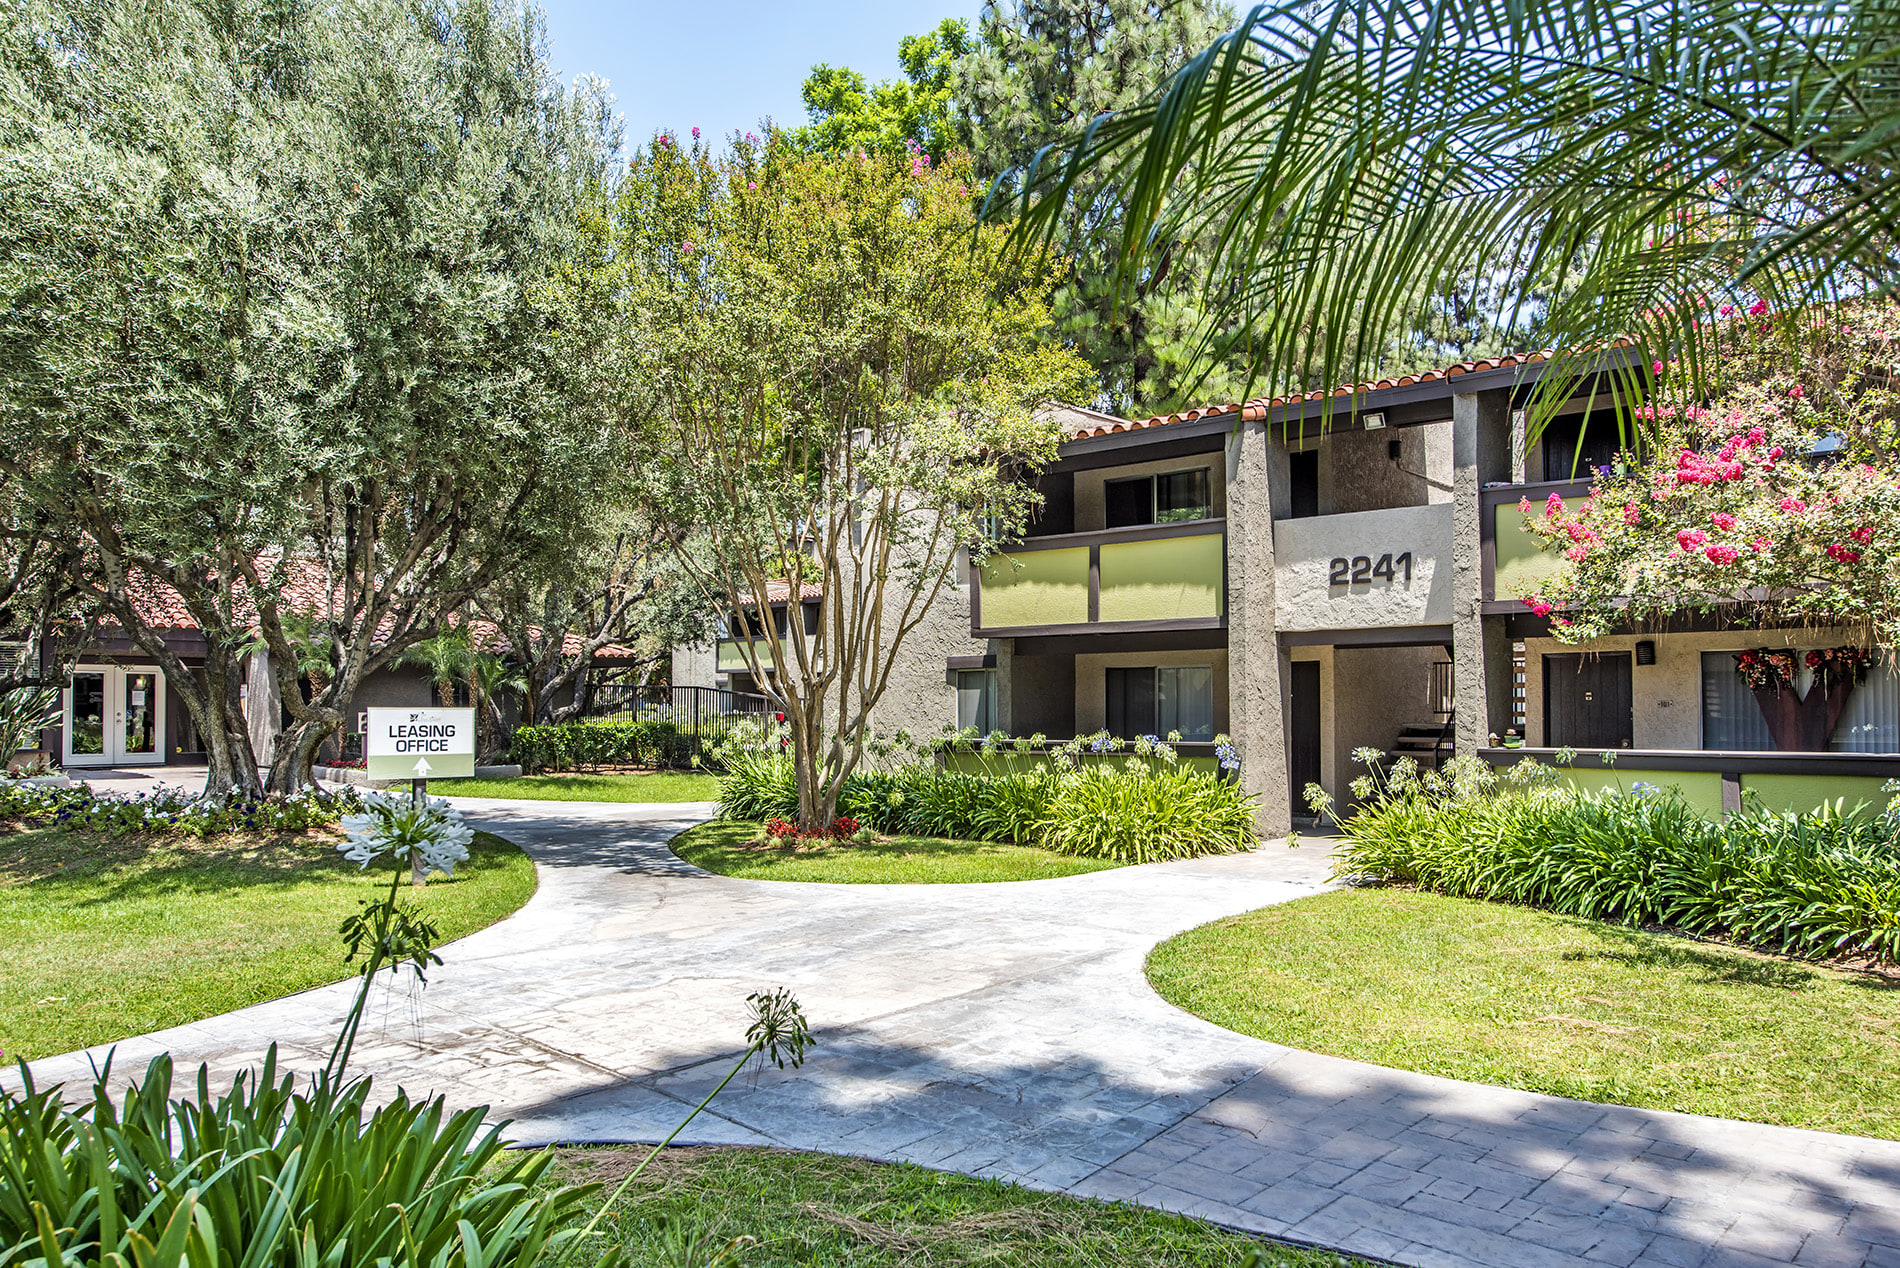 20 Best Apartments In San Dimas, CA (with pictures)!